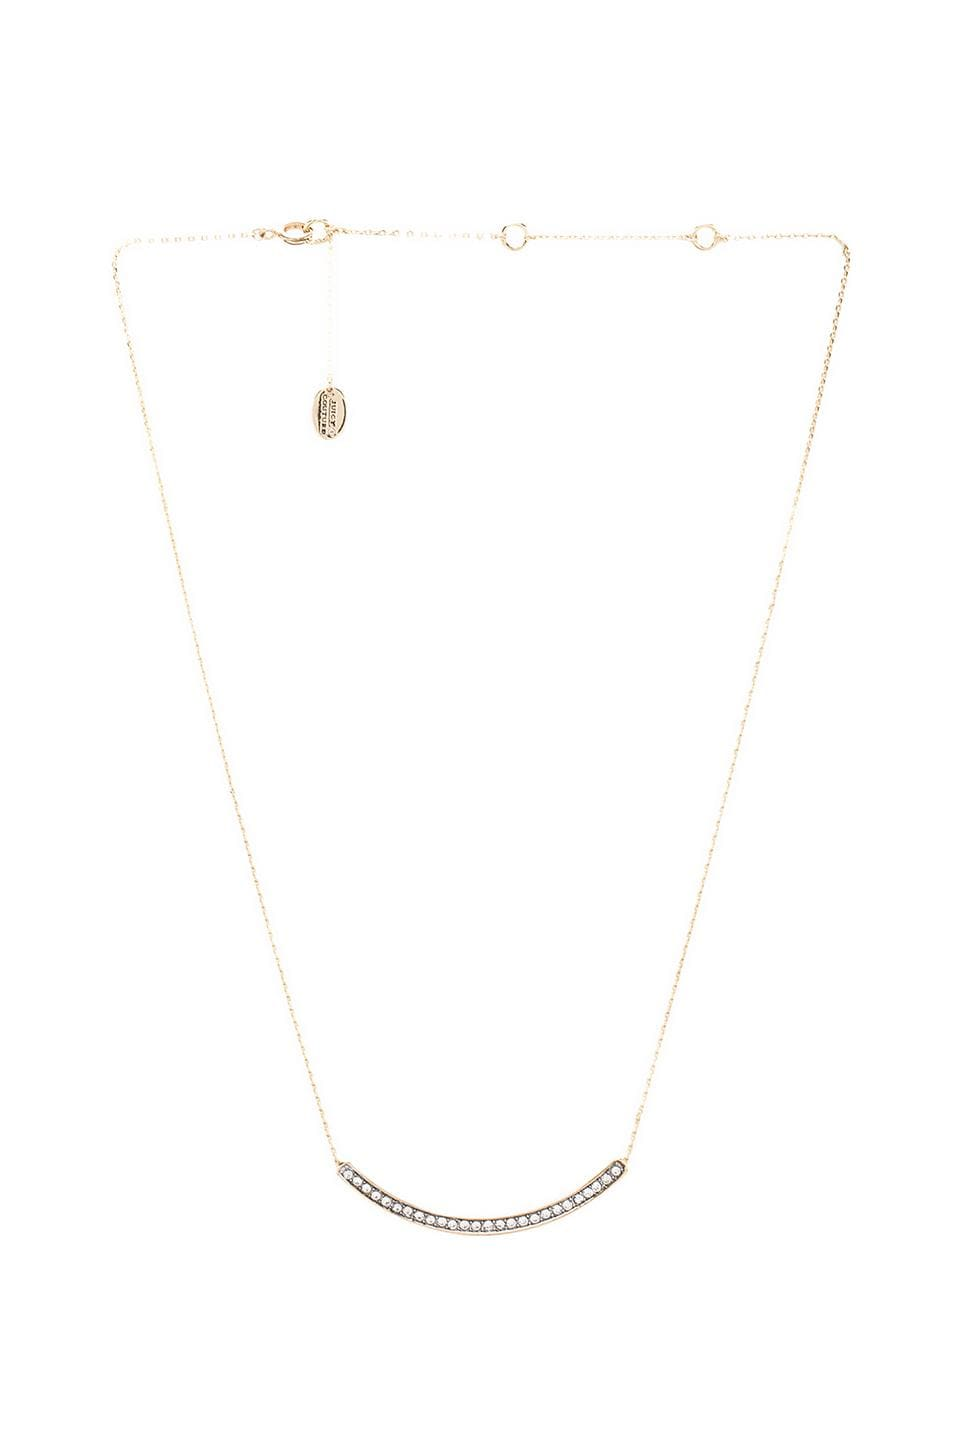 Juicy Couture Pave Bar Necklace in Gold